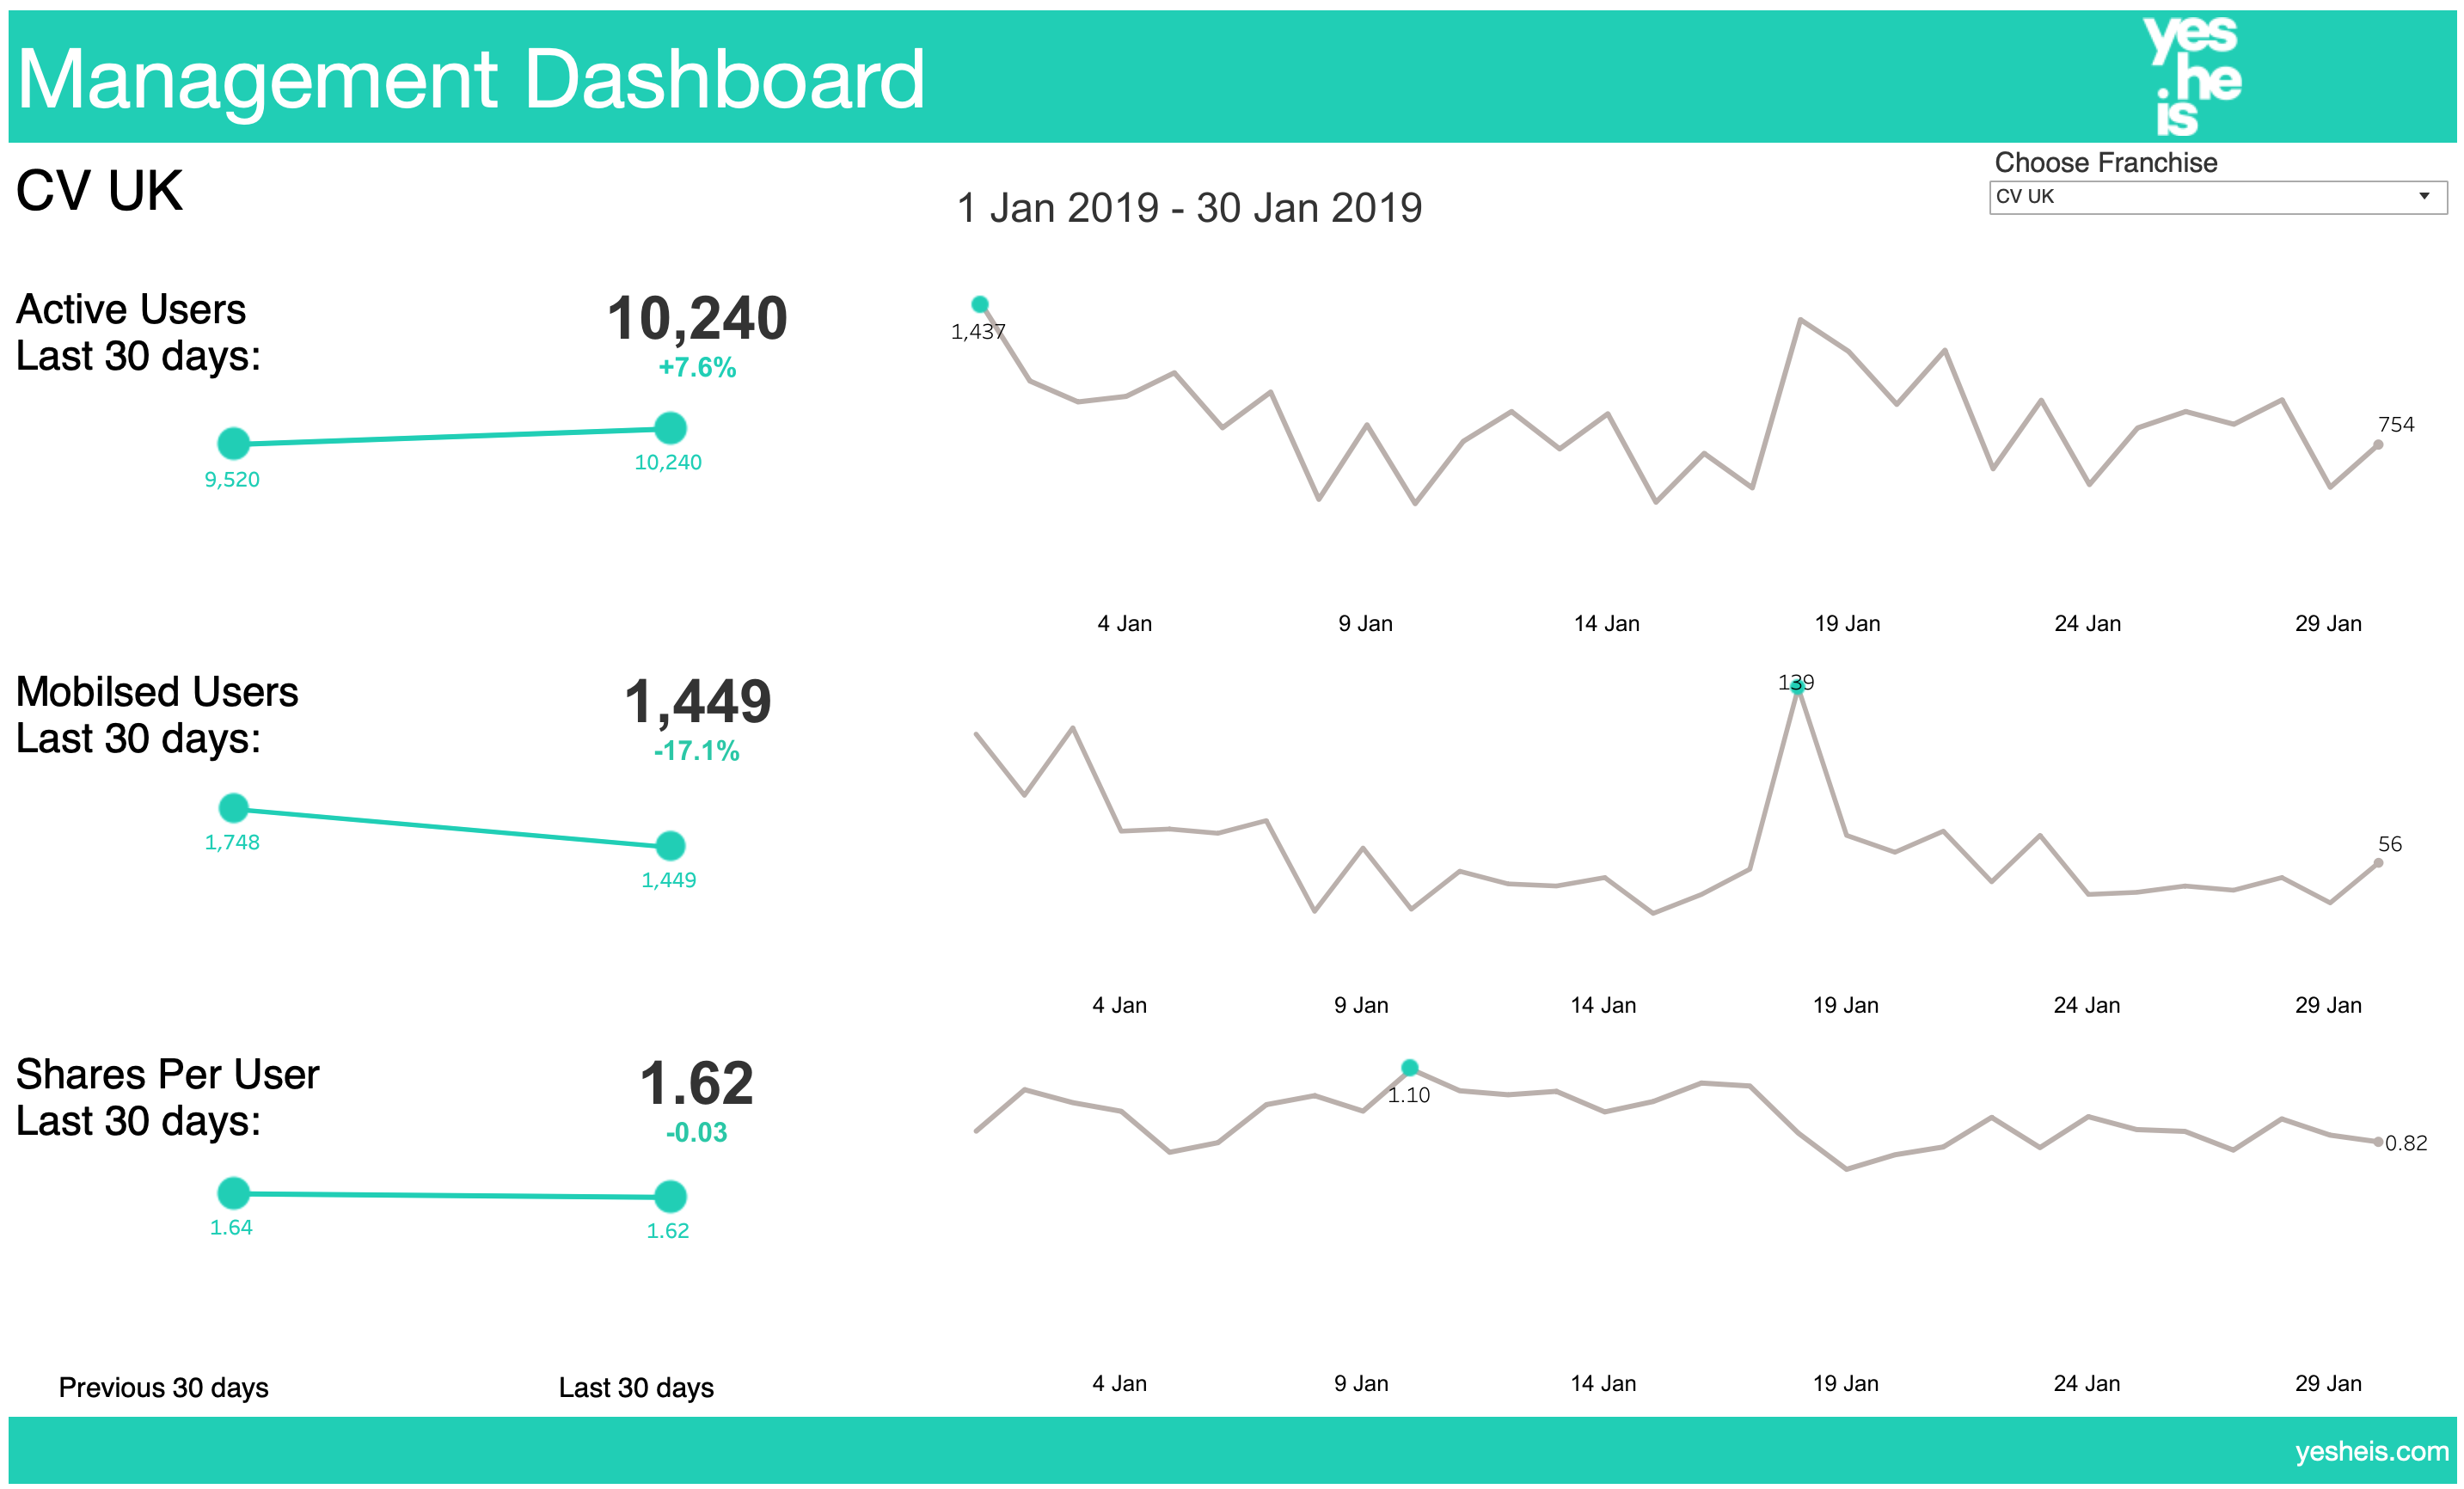 Management KPI Dashboard